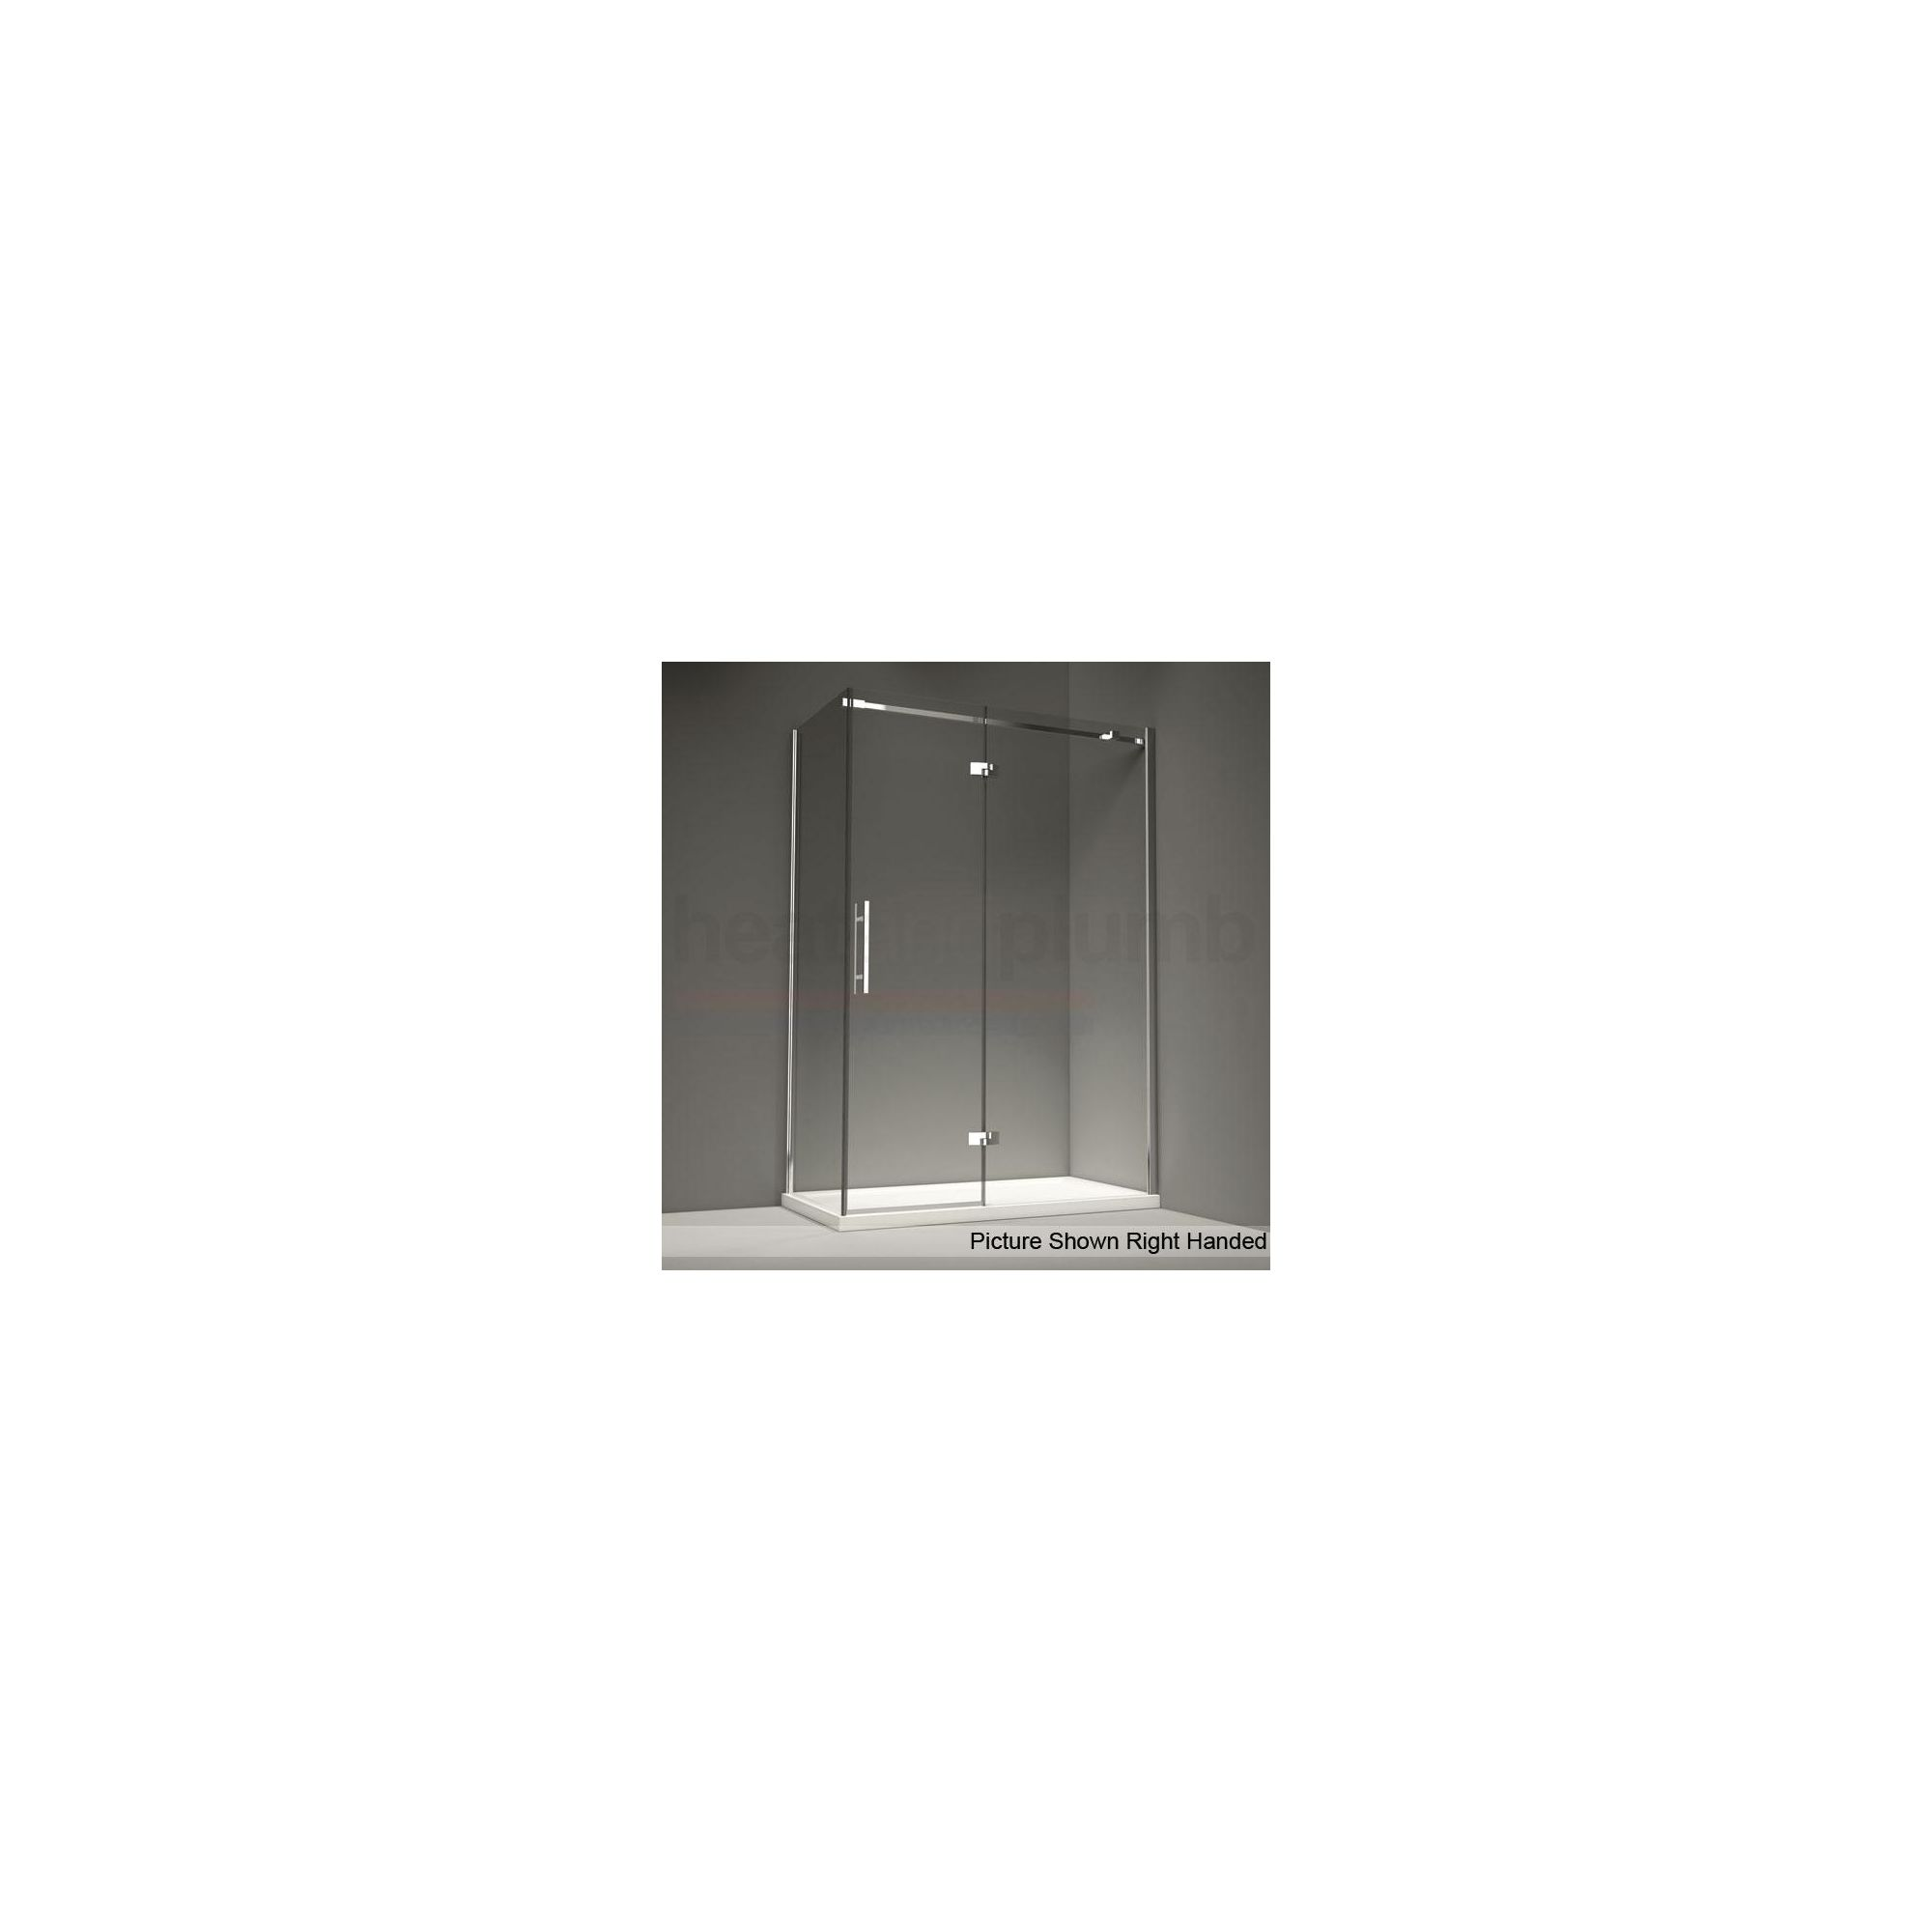 Merlyn Series 9 Inline Hinged Door Shower Enclosure, 1000mm x 800mm, Low Profile Tray, 8mm Glass at Tesco Direct